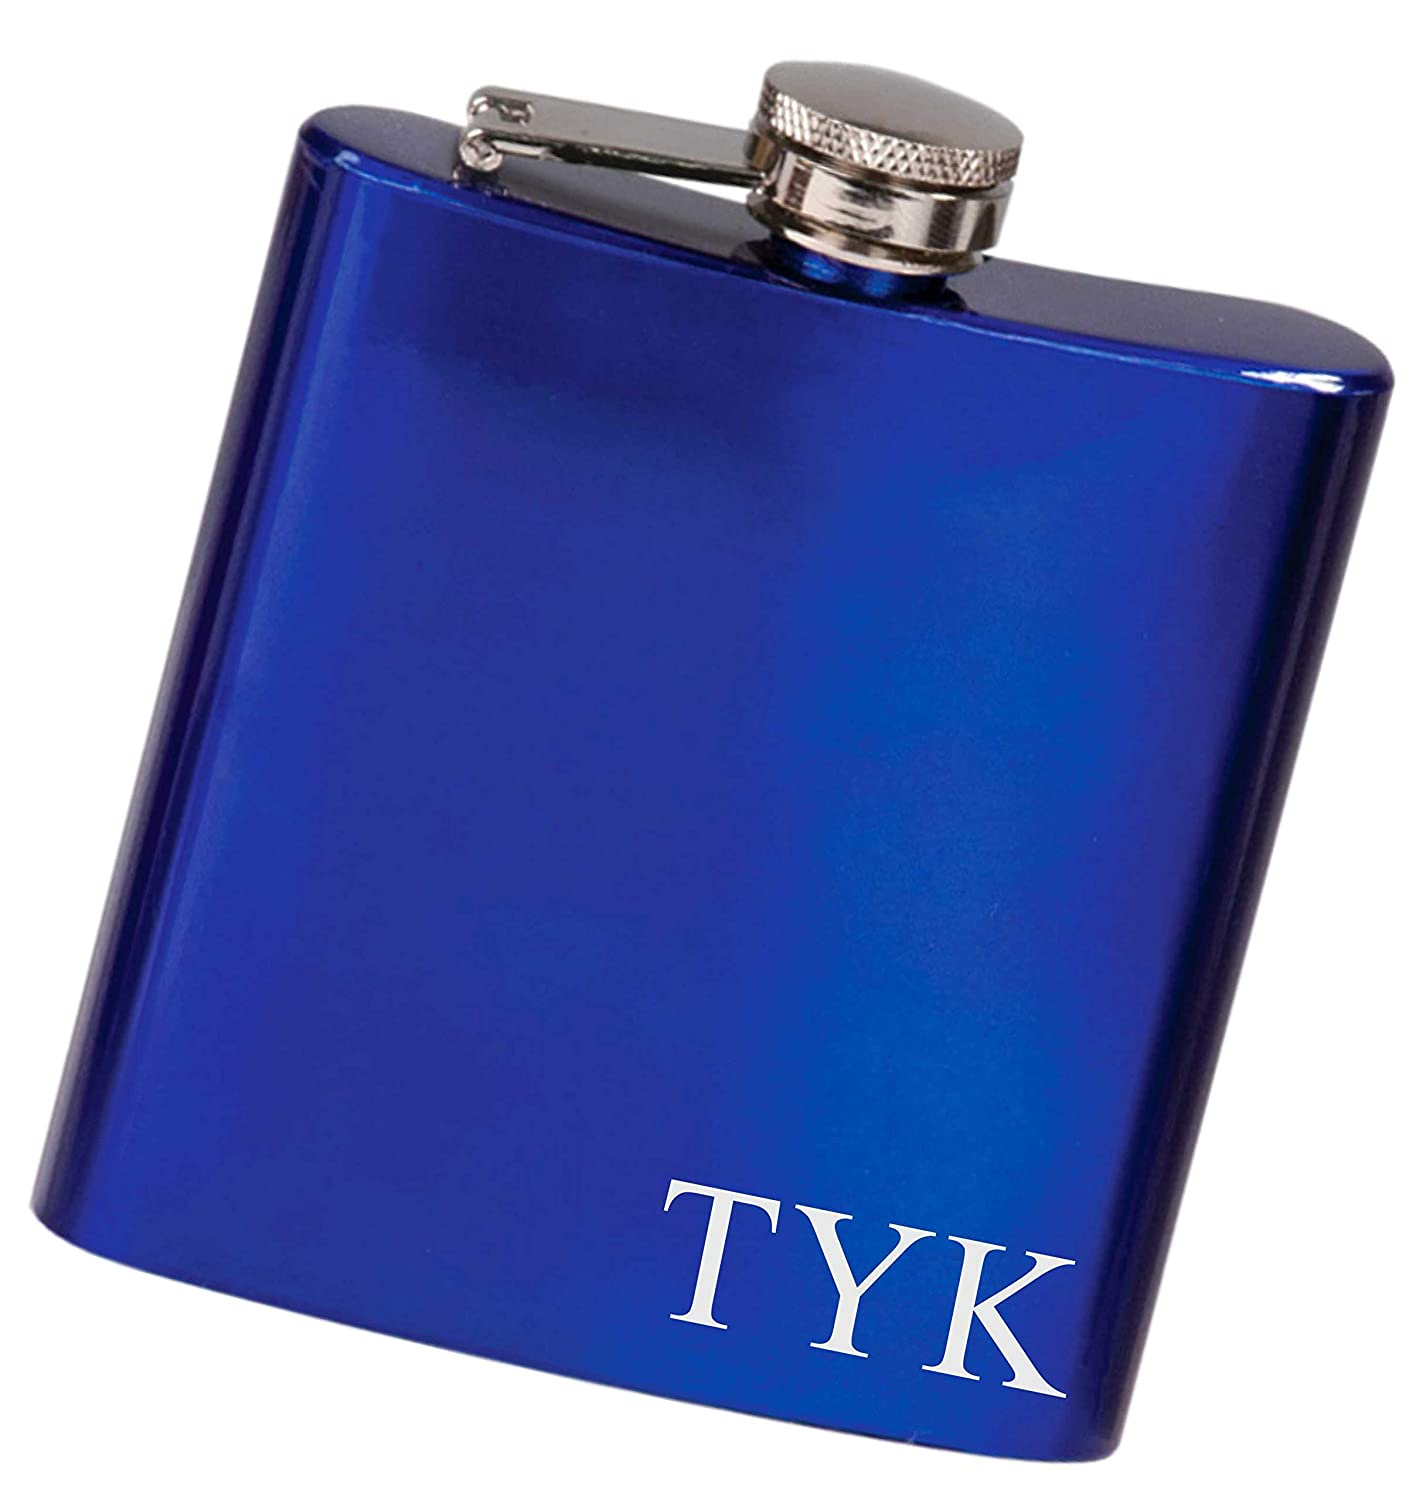 Custom Initials Flask, Engraved Stainless Steel Flask in Your Choice of Colors, 6 oz - F27